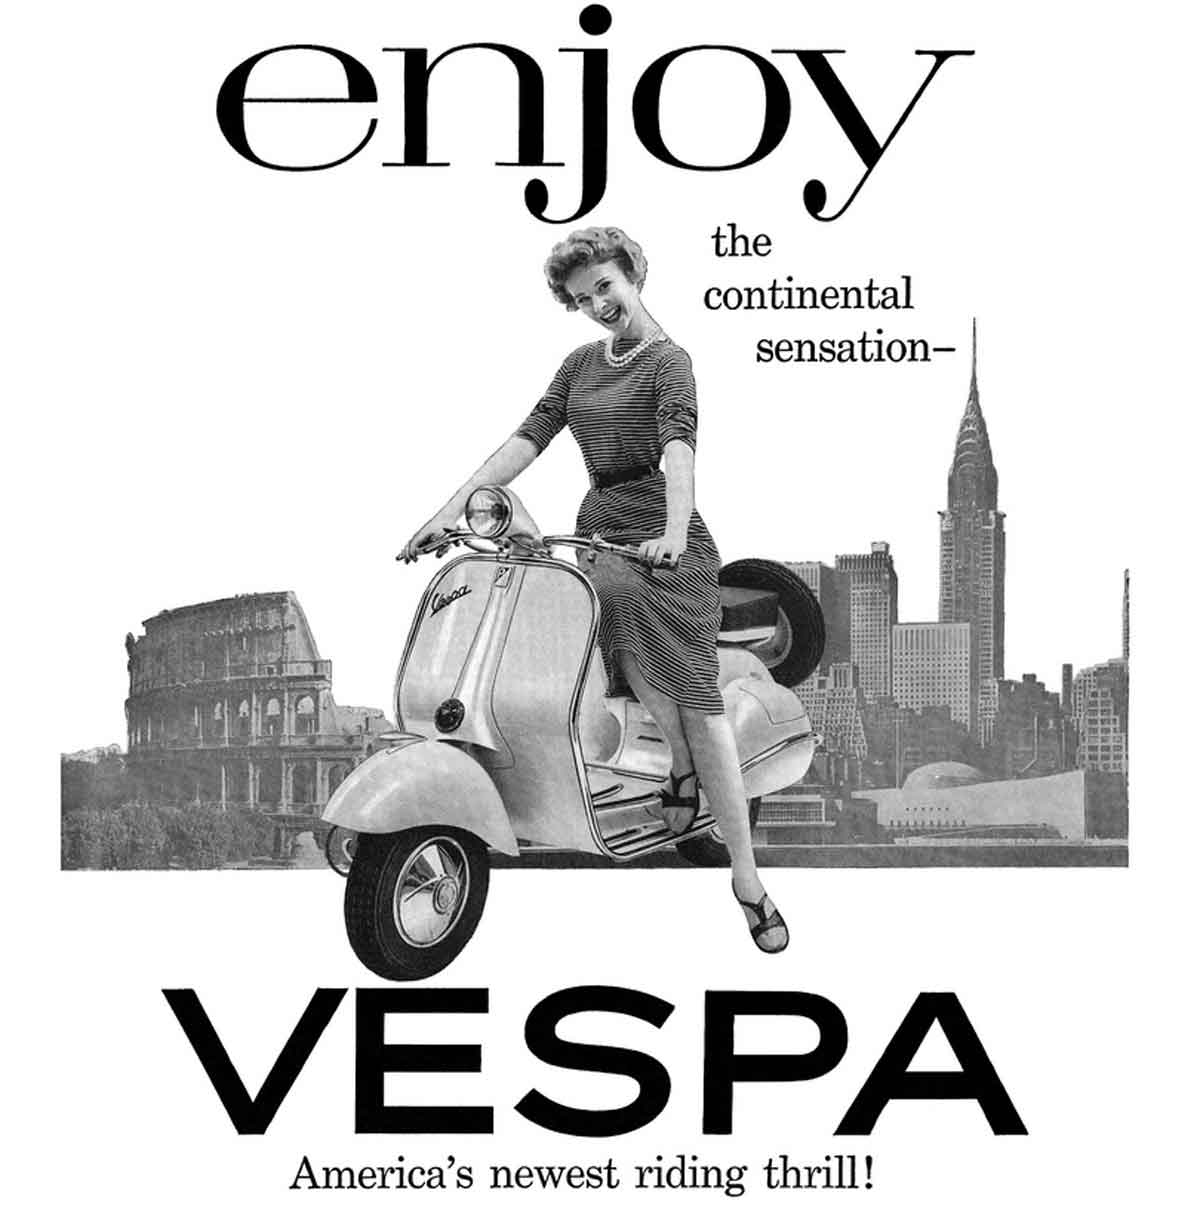 Vespa-Chic---How-the-world-was-seduced-by-a-scooter2